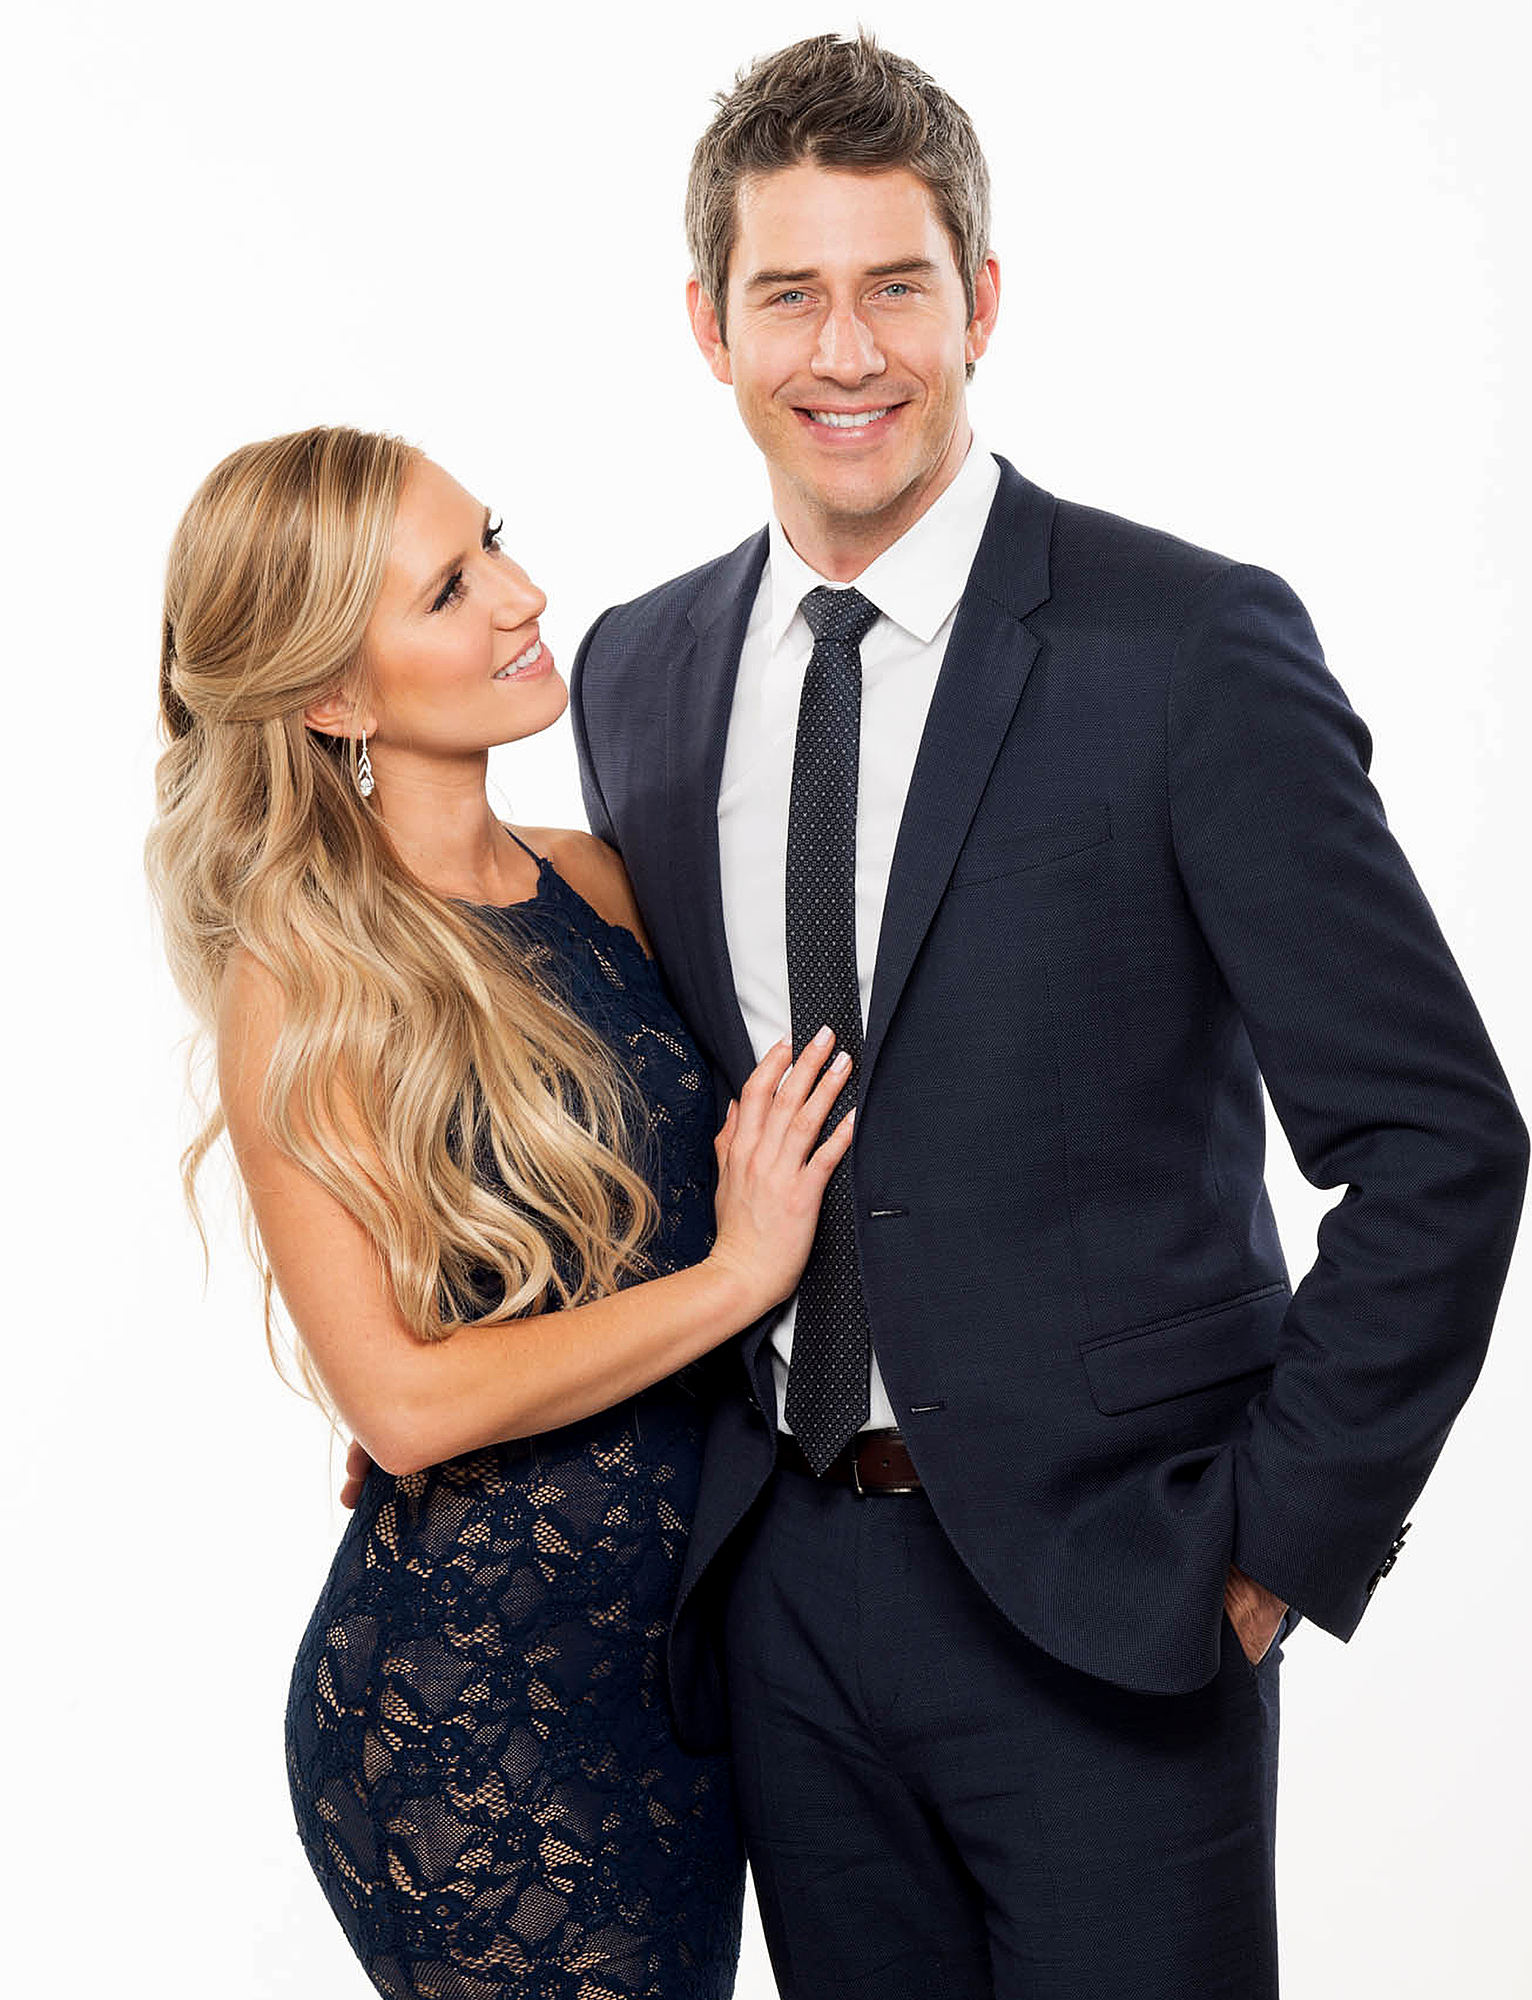 Arie-Luyendyk-Jr. ,-Lauren-Burnham-wedding - THE BACHELOR – After breaking off his engagement with Becca Kufrin on the dramatic season 22 Bachelor finale, Arie Luyendyk Jr. proposed to Lauren Burnham on The Bachelor: After the Final Rose, a two-hour live special, TUESDAY, MARCH 6 (8:00-10:01 p.m. EST), on The ABC Television Network.